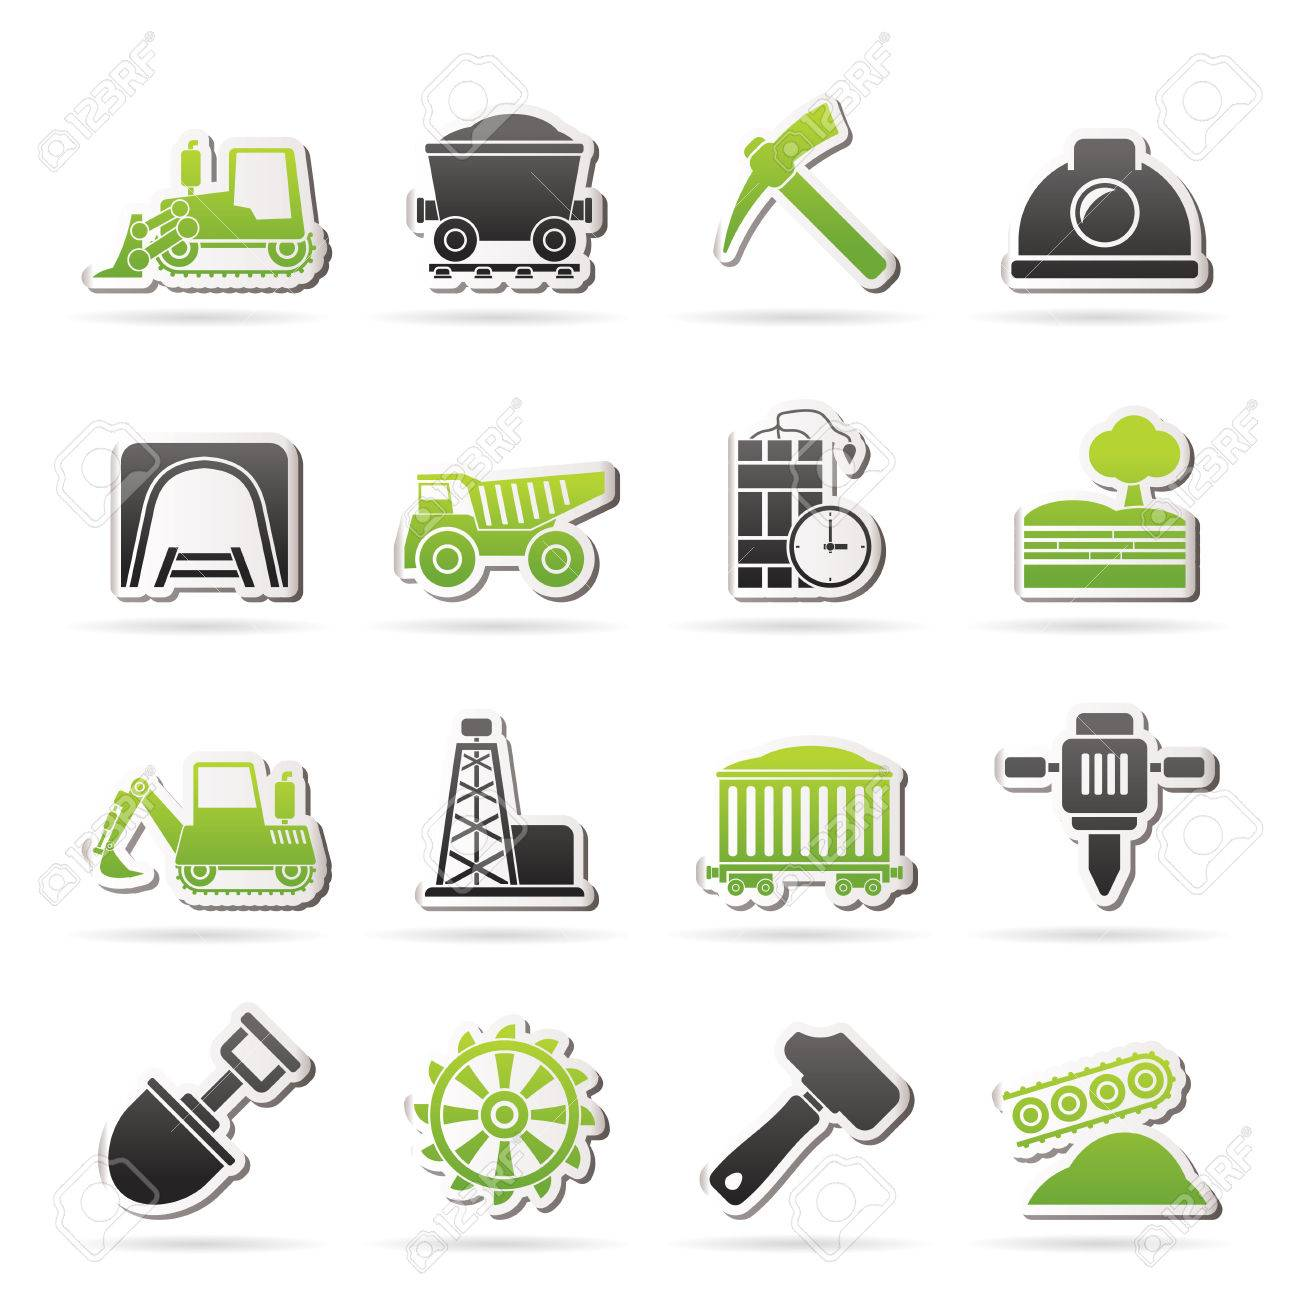 Mining and quarrying industry icons - vector icon set Stock Vector - 26493325